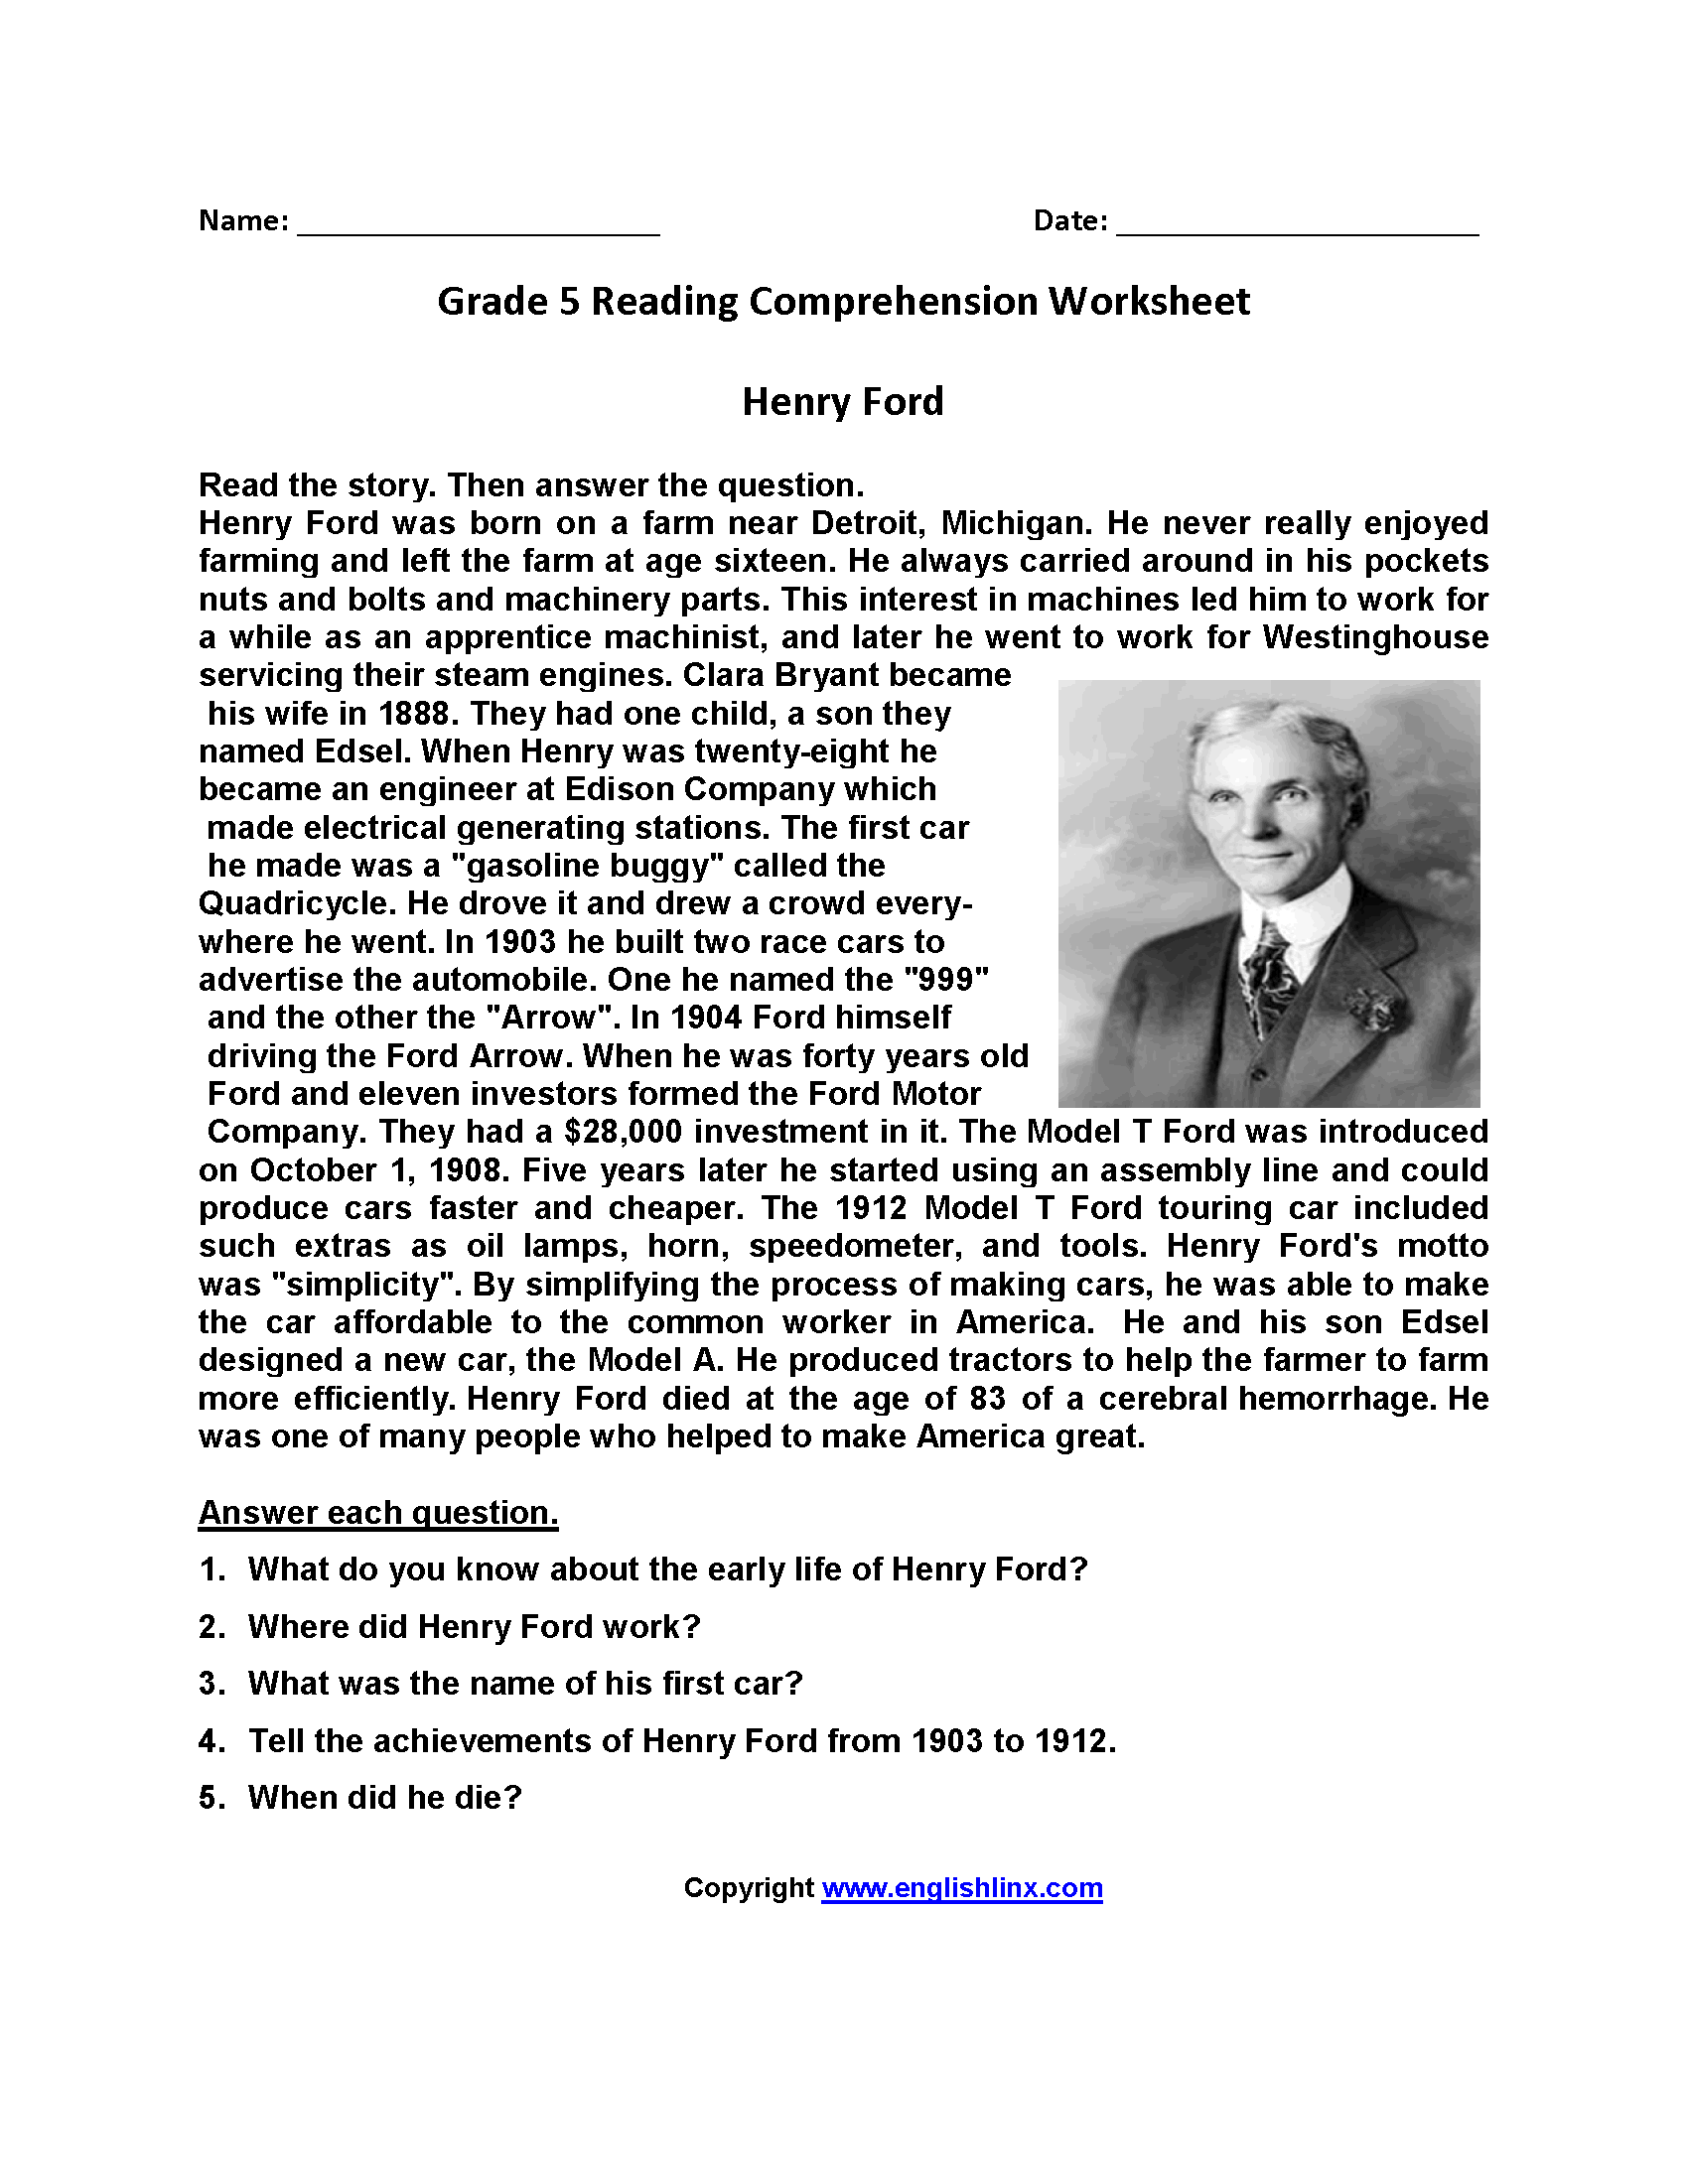 Free English Worksheets For 5th Grade